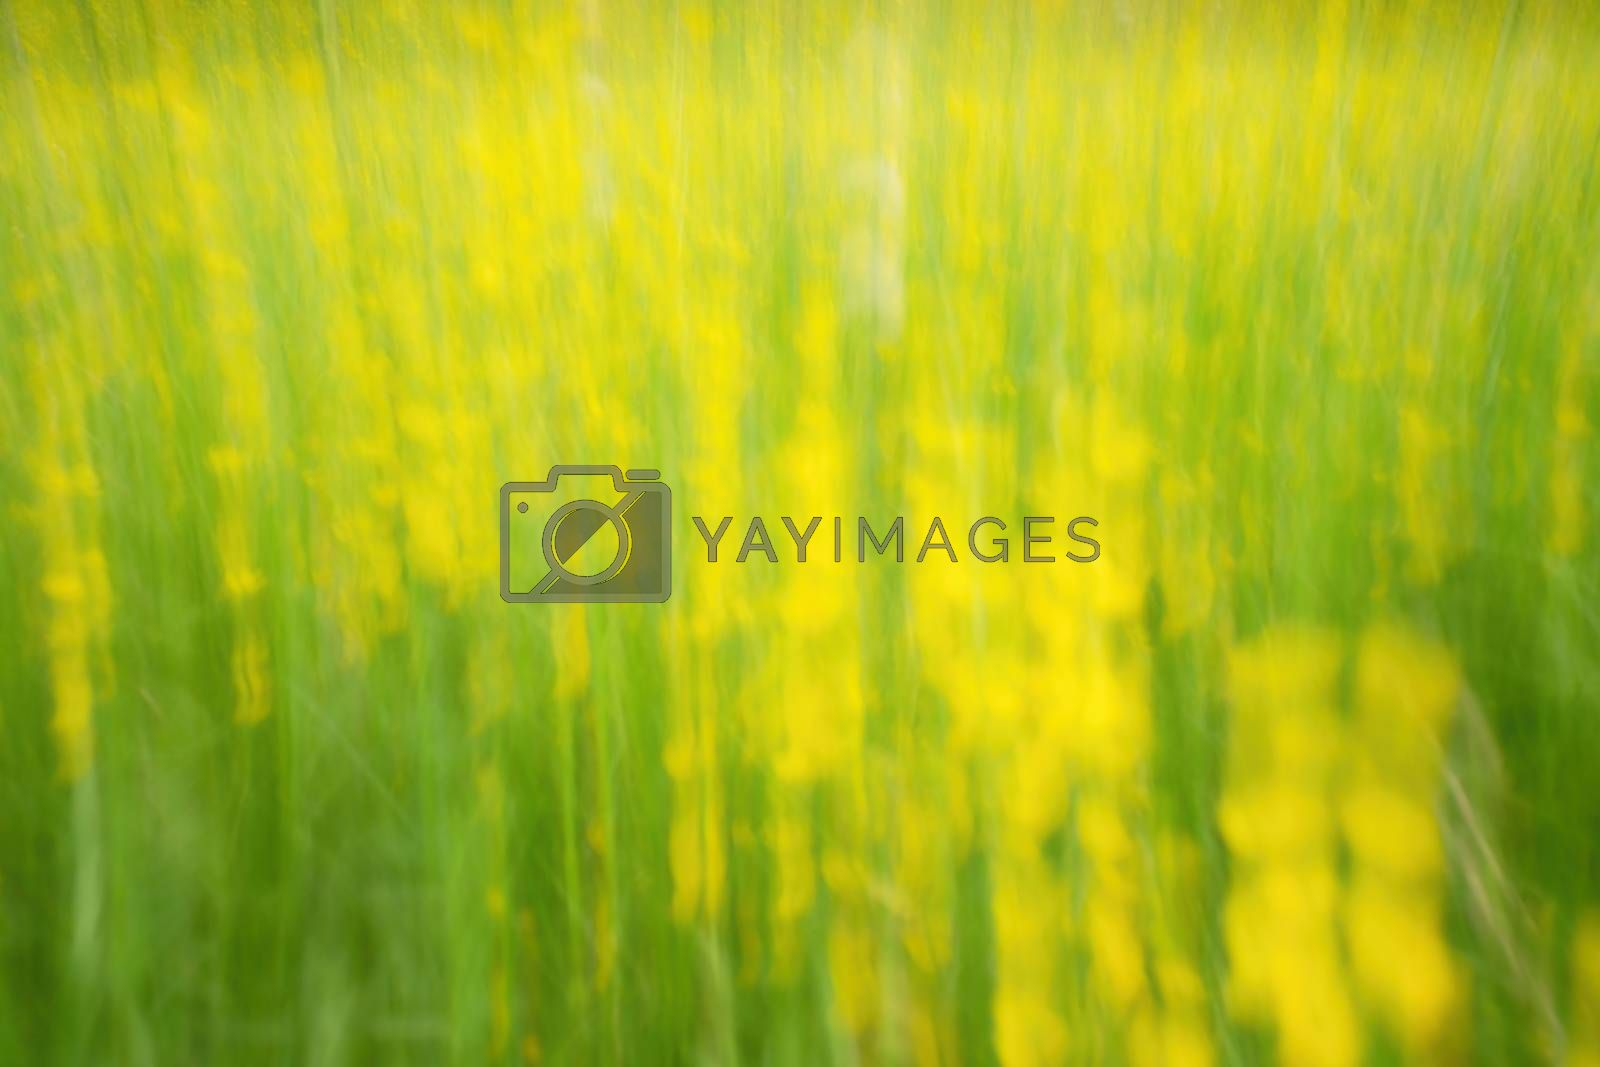 Defocused flowers and grass for background. Blurred and de focused fresh yellow blossom and green stalks leaves. Hypnotic blurry effect.